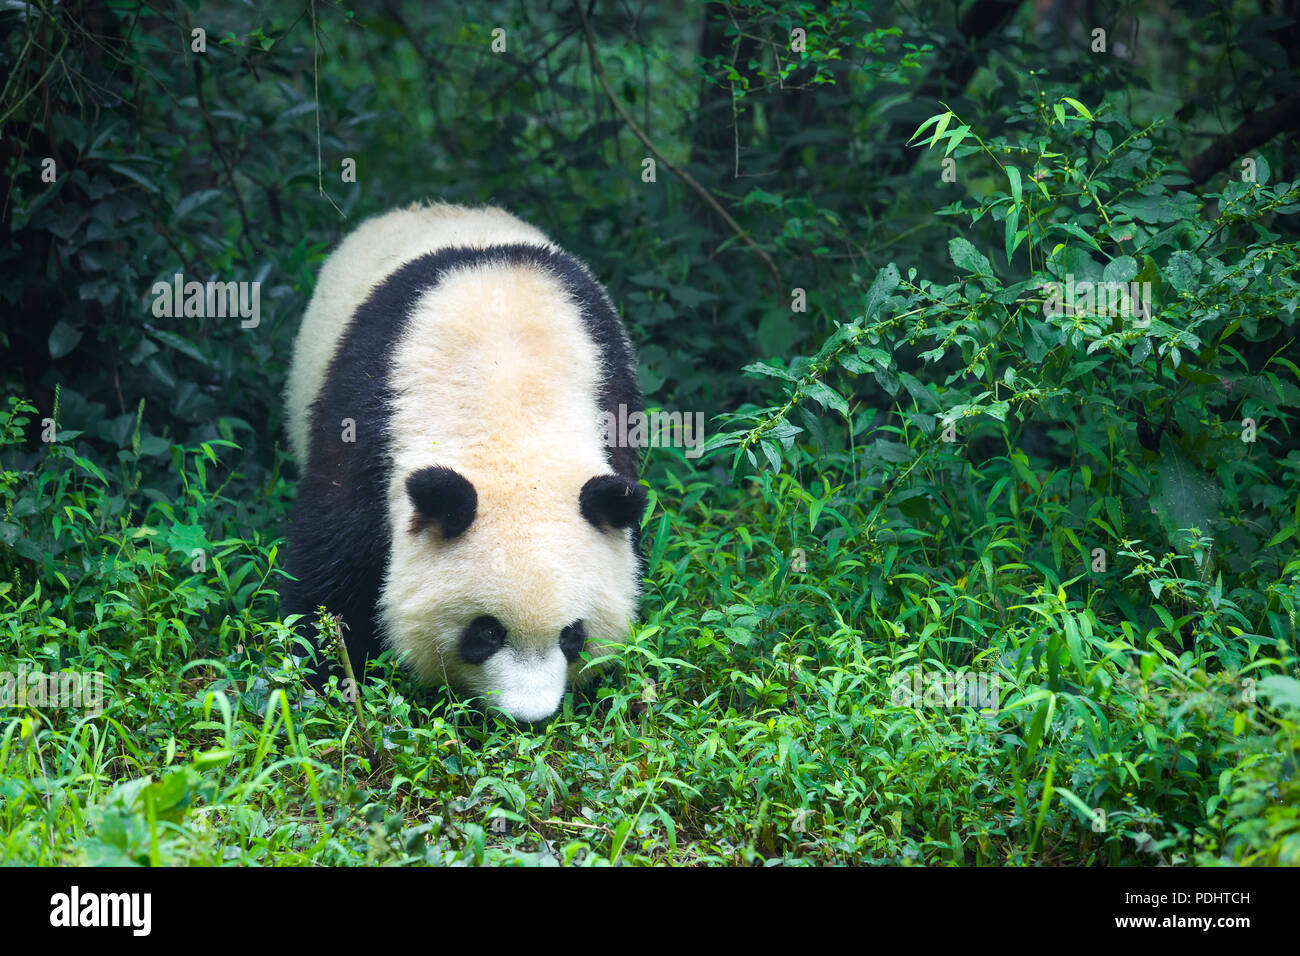 One adult giant panda walking in the forest in China - Stock Image